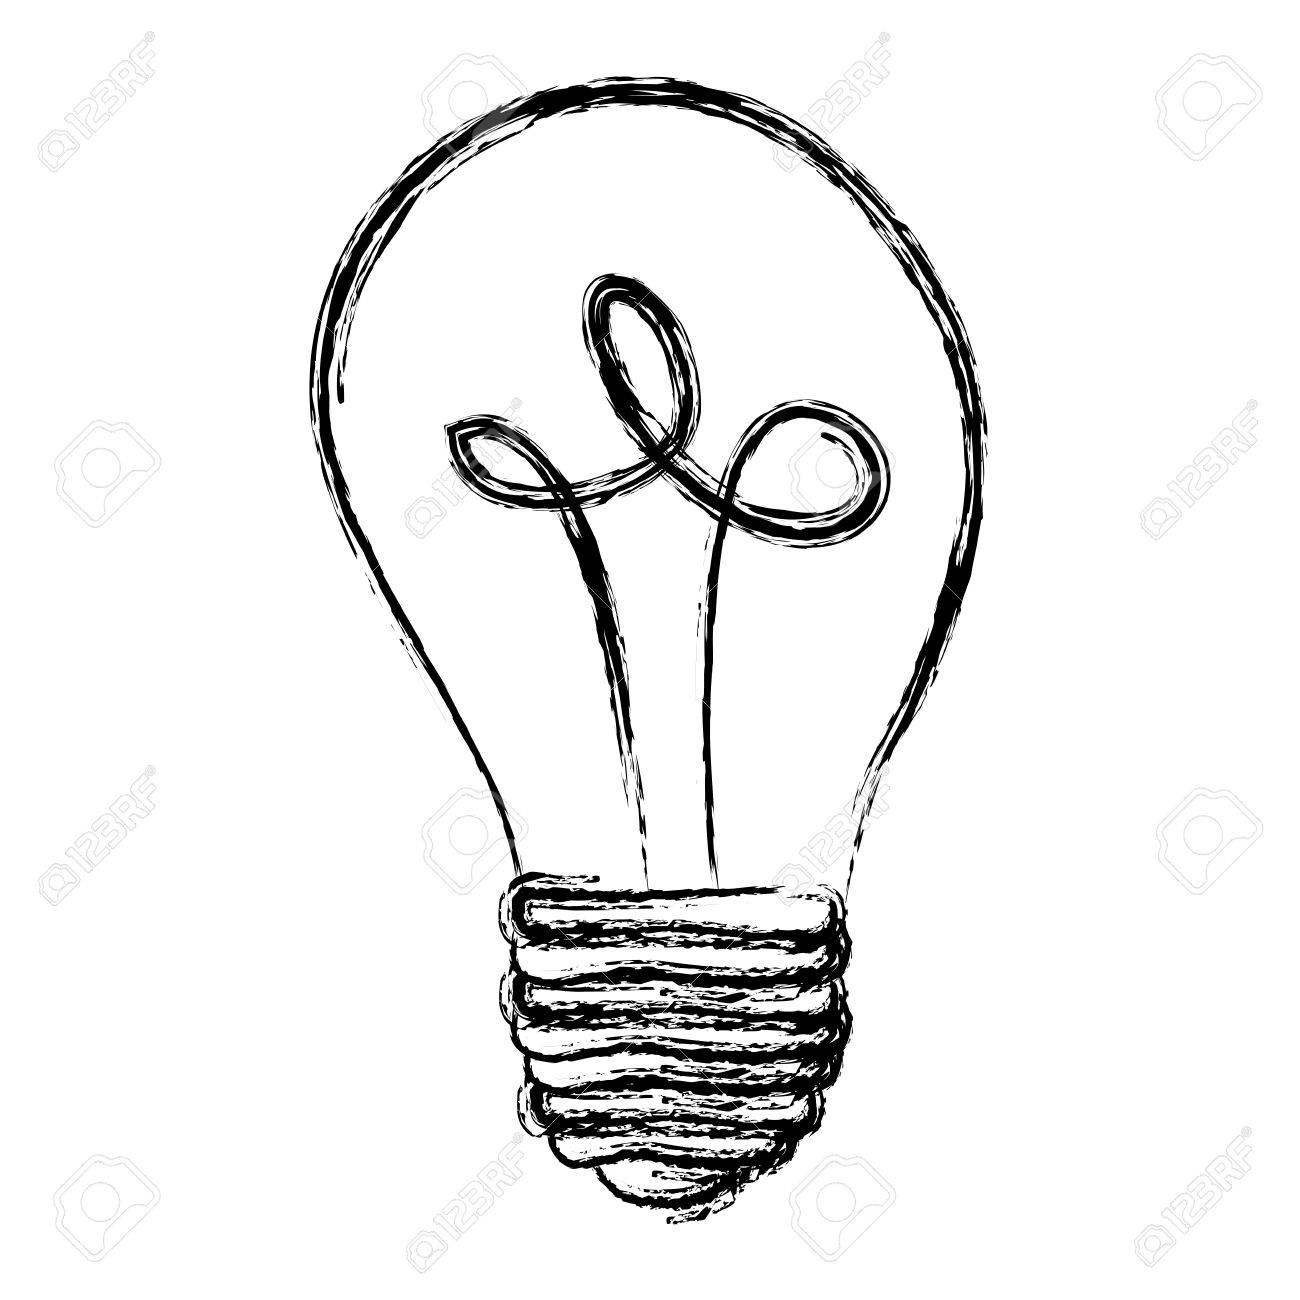 1300x1300 Monochrome Sketch With Silhouette Of Light Bulb Off Vector